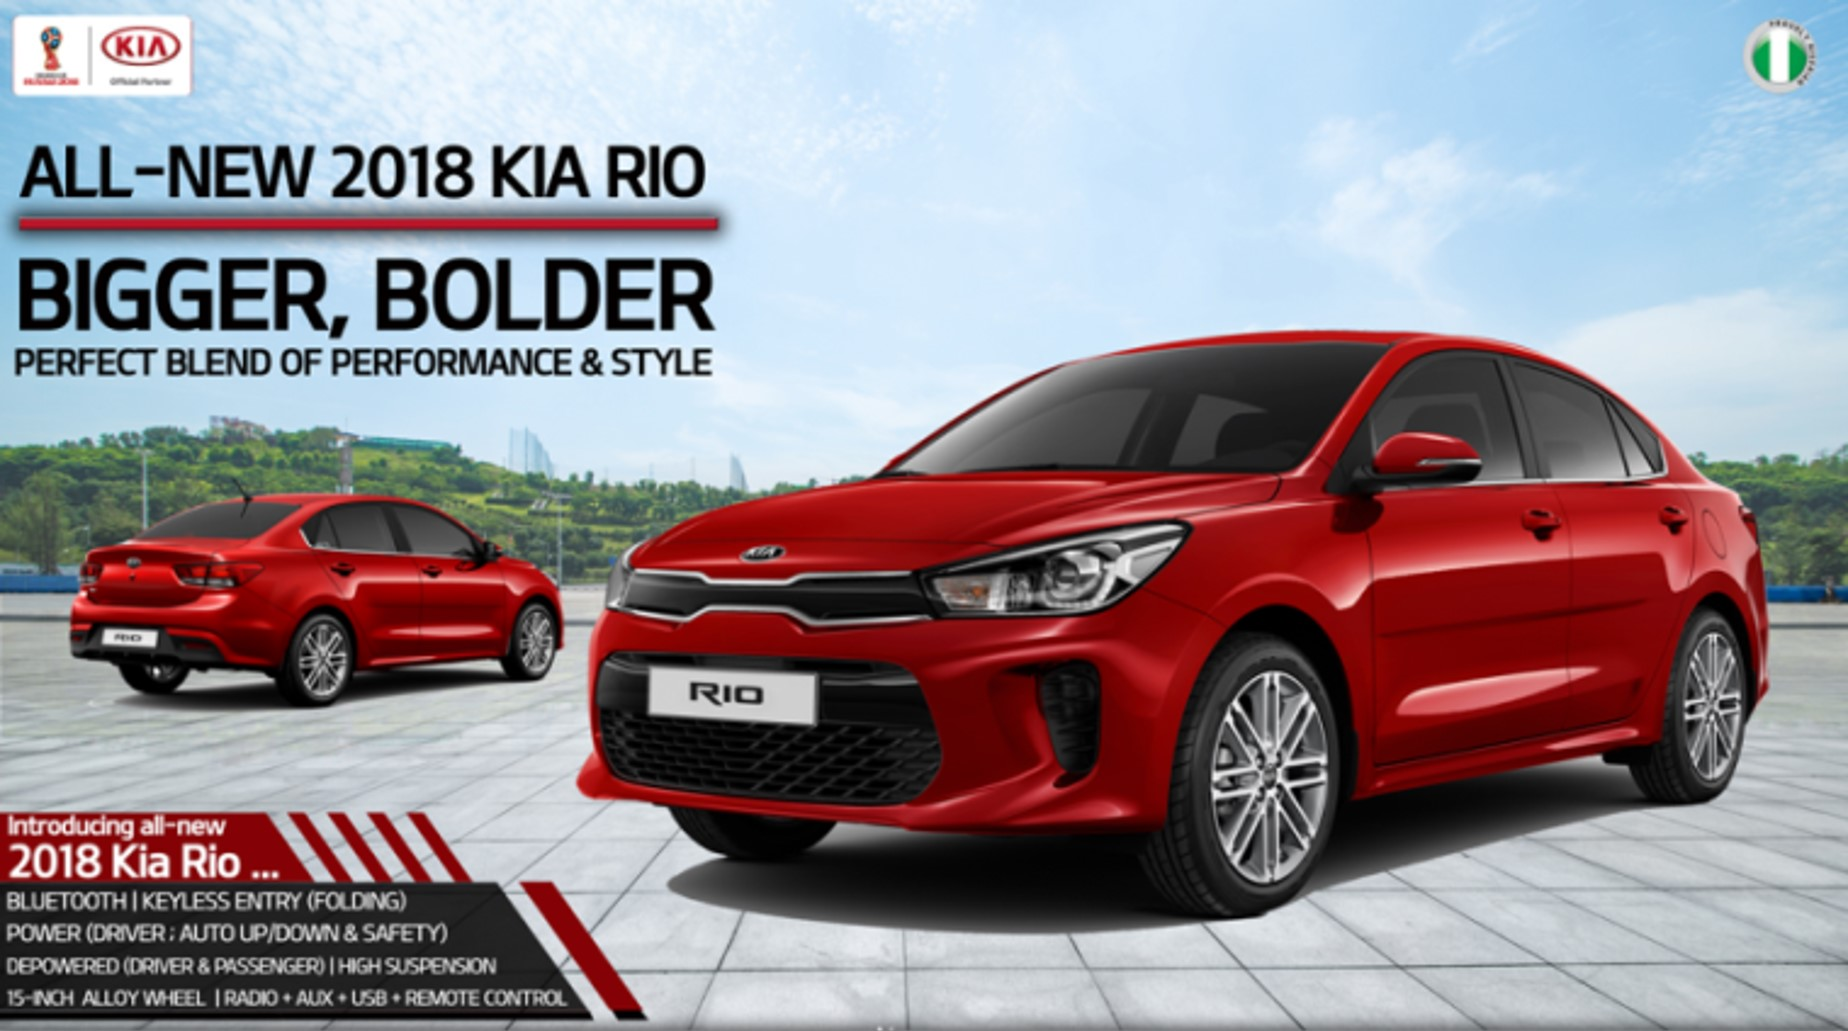 kia nigeria introduces 2018 kia rio bigger bolder. Black Bedroom Furniture Sets. Home Design Ideas